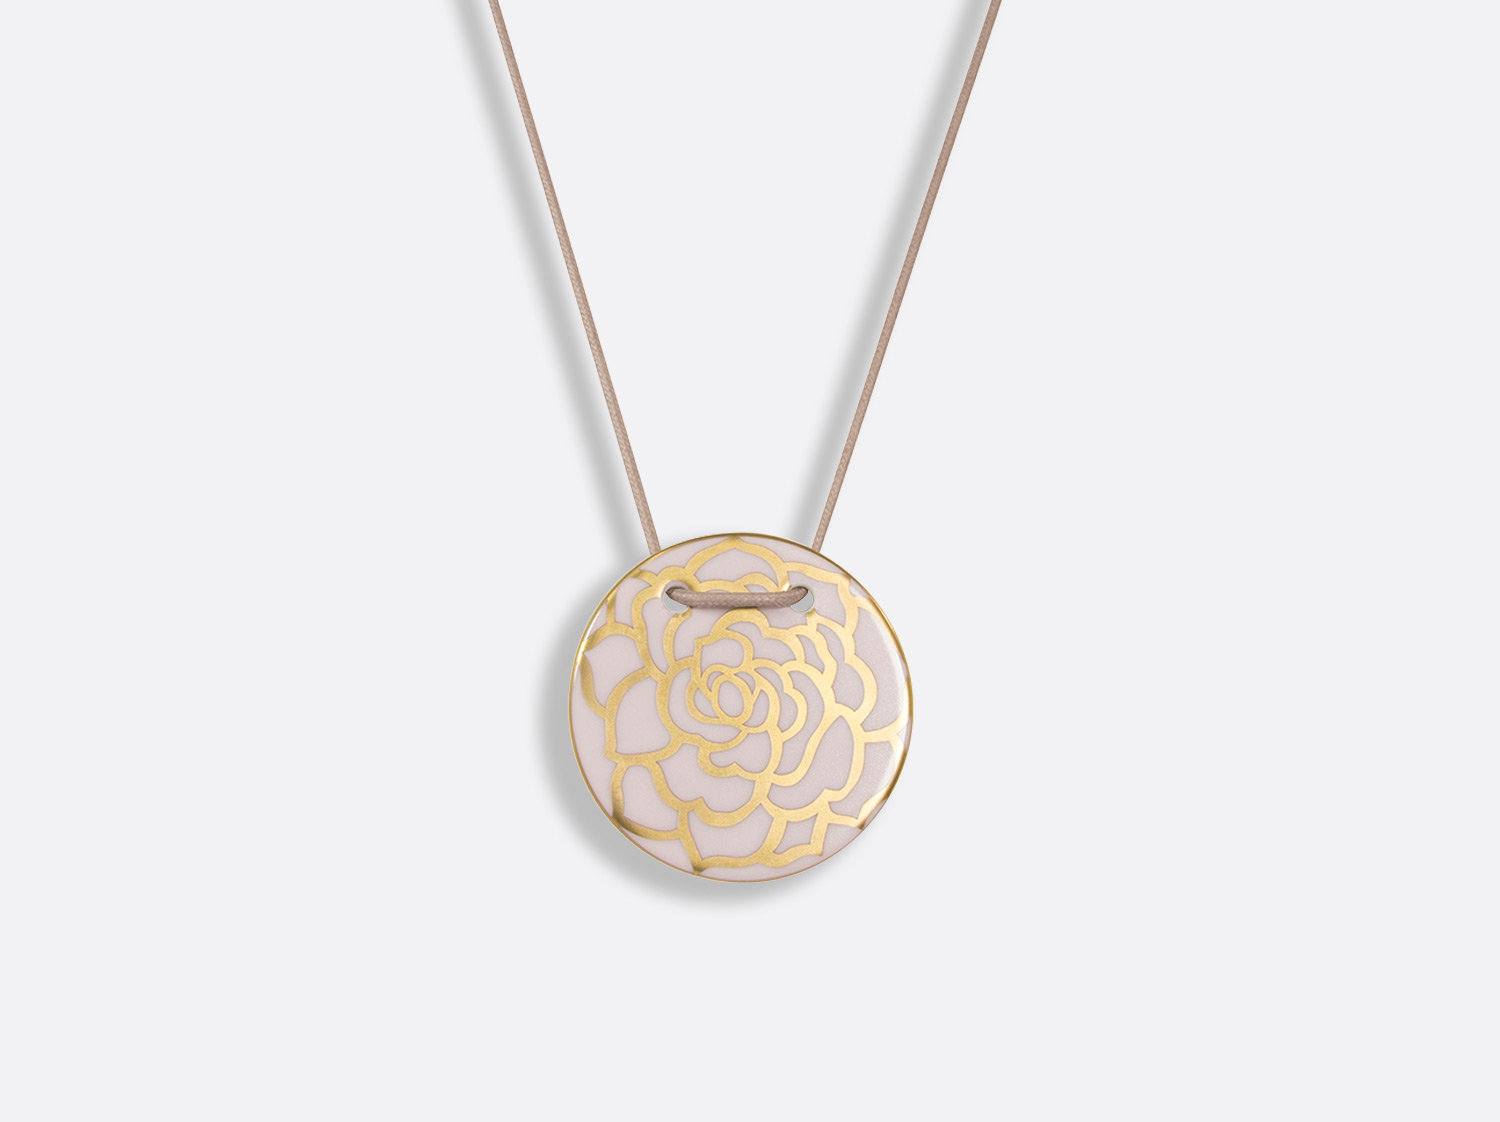 China Gong pendant D. 48 mm of the collection Gardenia Rose or | Bernardaud